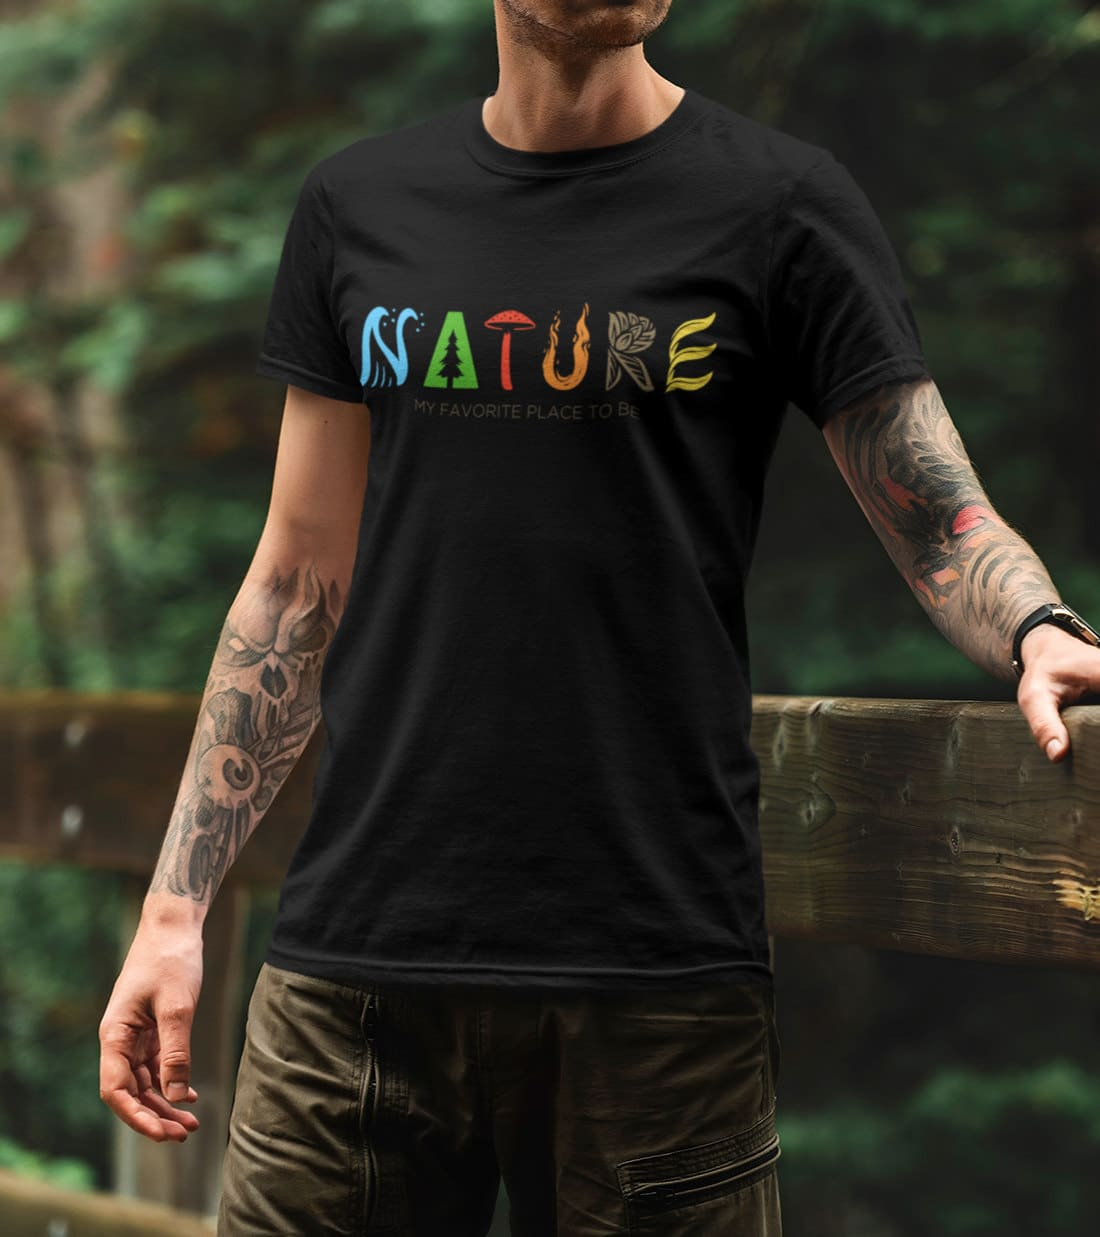 Wandern-T-Shirt-Nature-in-Typo-my-favorite-place-to-be